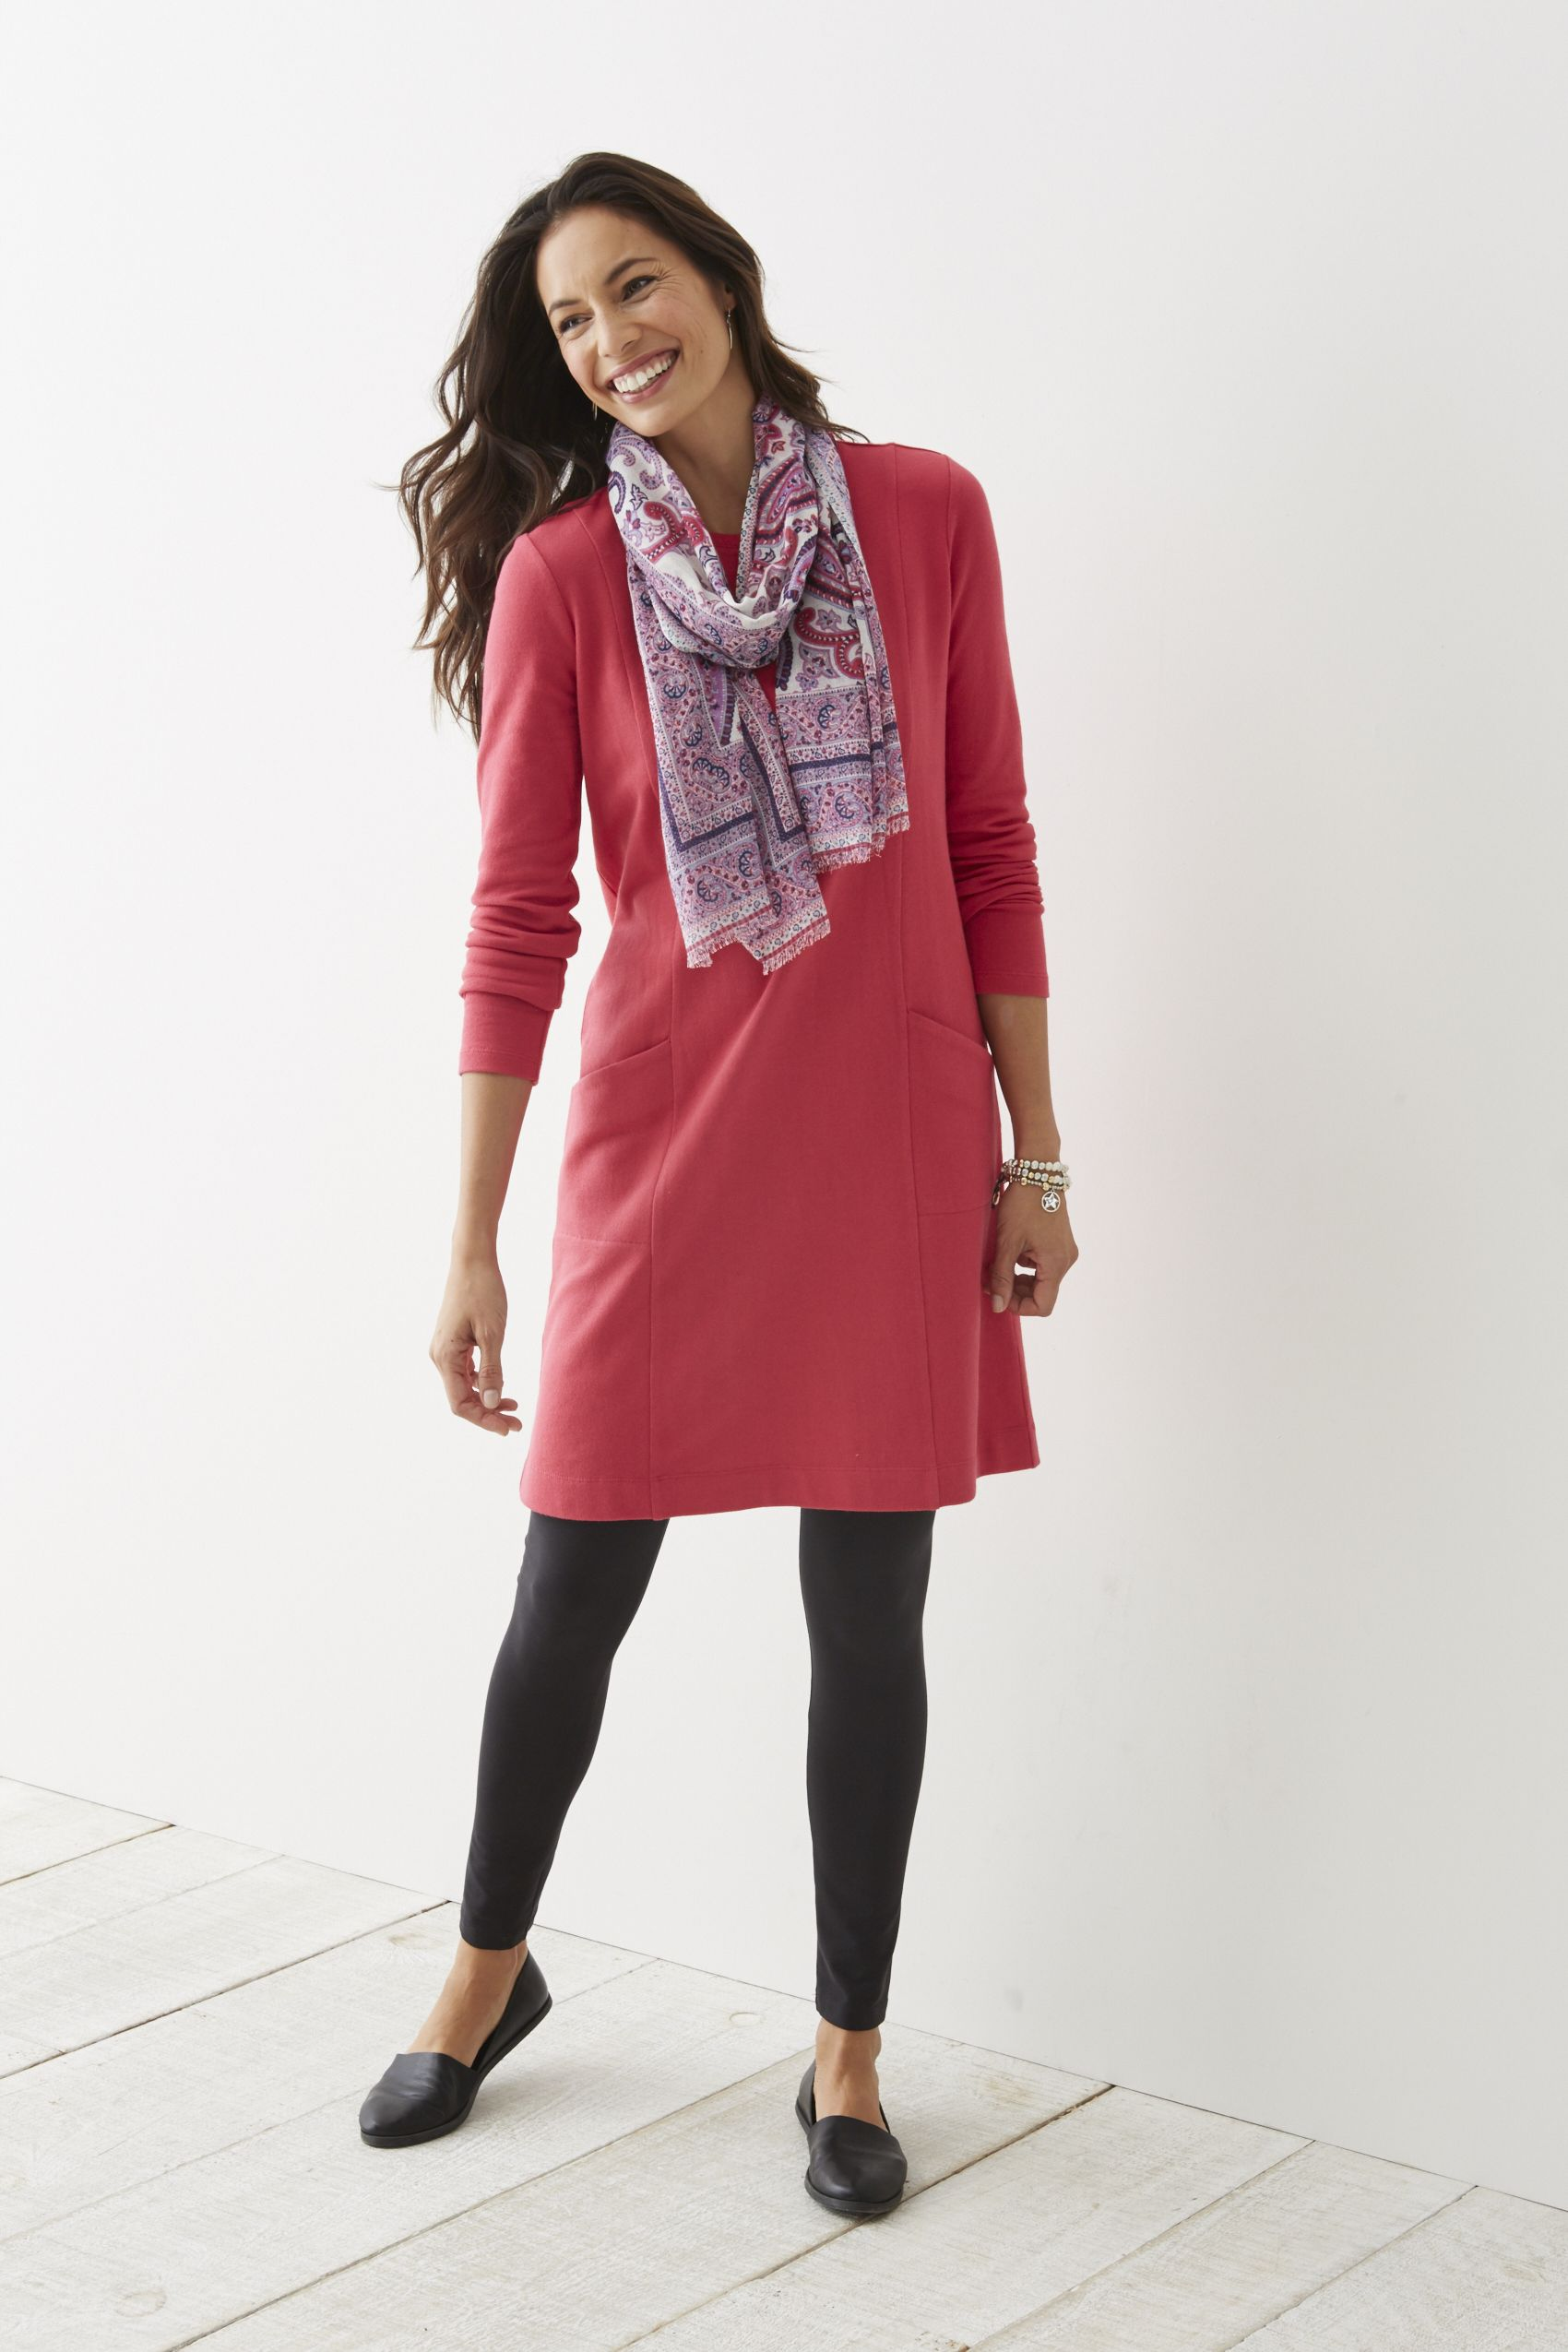 83c8a2b59ed Seamed crew-neck knit dress and the paisley kaleidoscope scarf ...